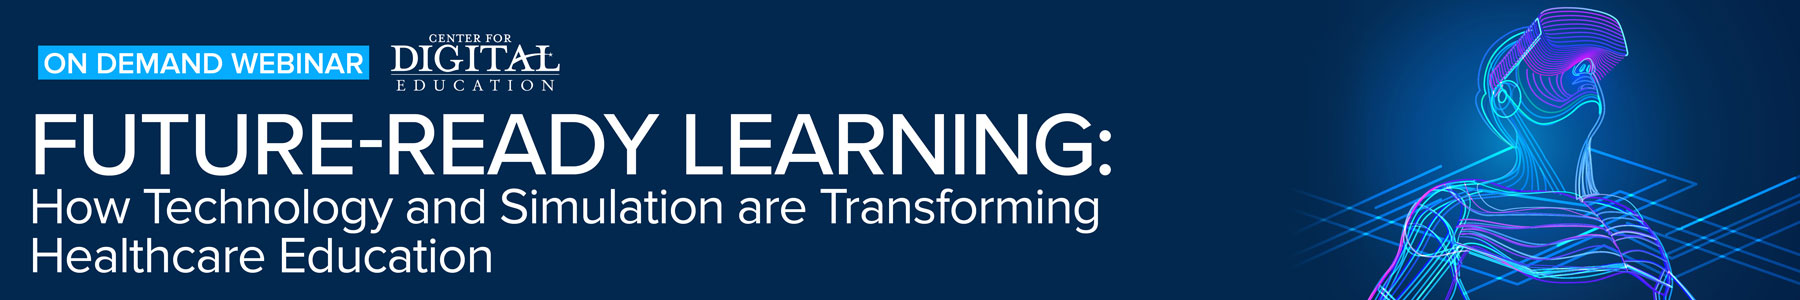 Future-Ready Learning: How Technology and Simulation are Transforming Healthcare Education